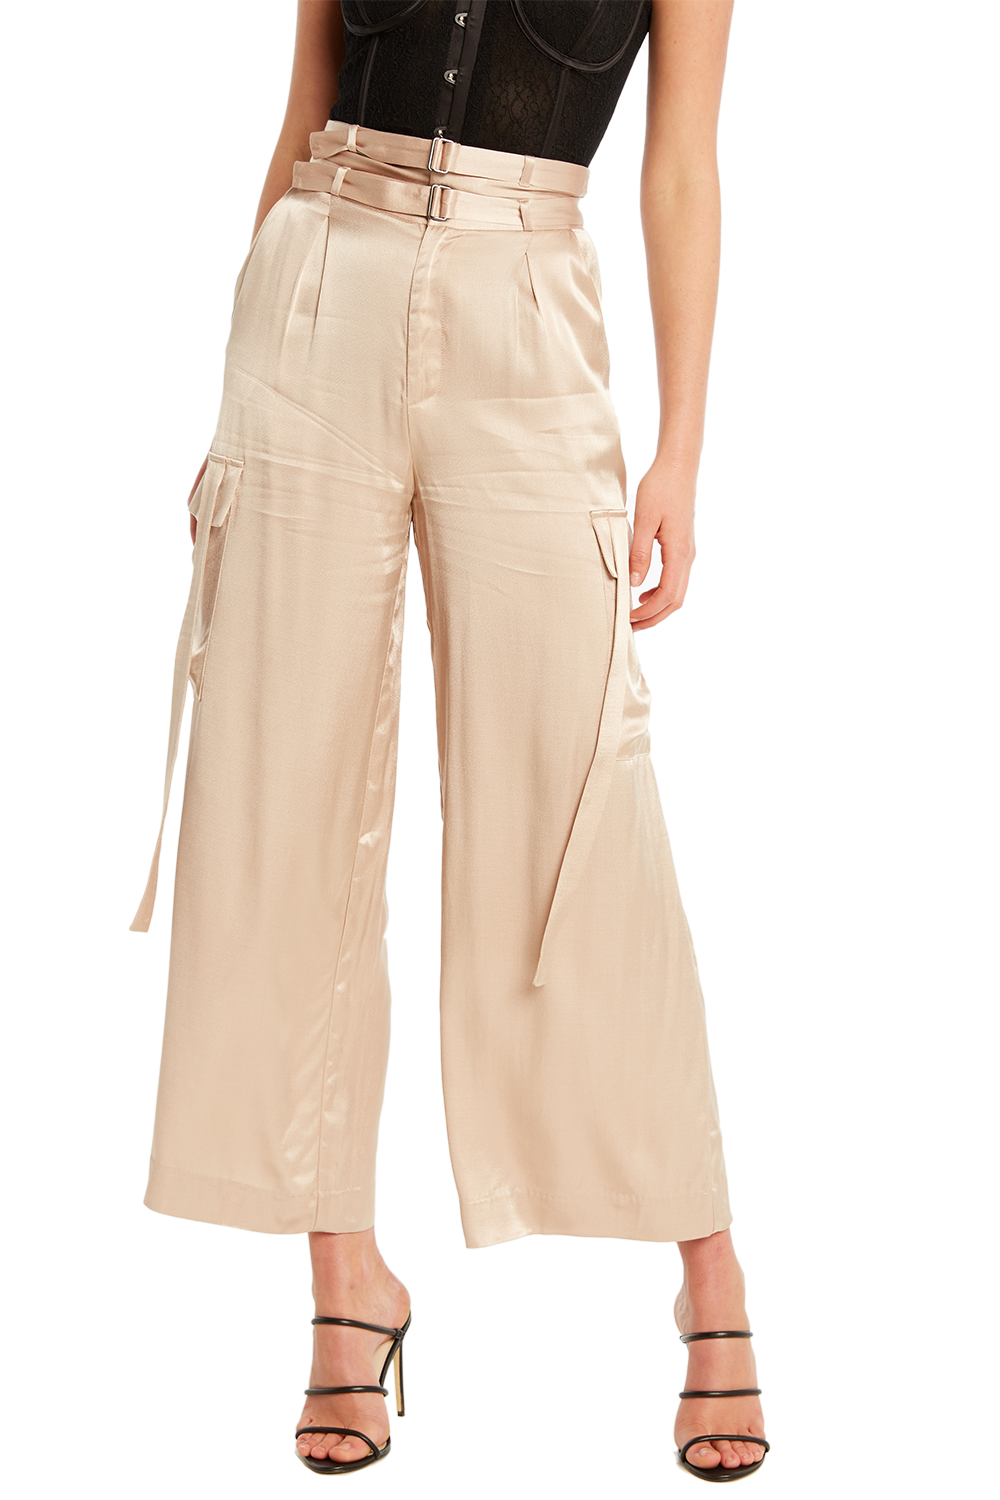 SATIN CARGO PANT in colour MOONLIGHT